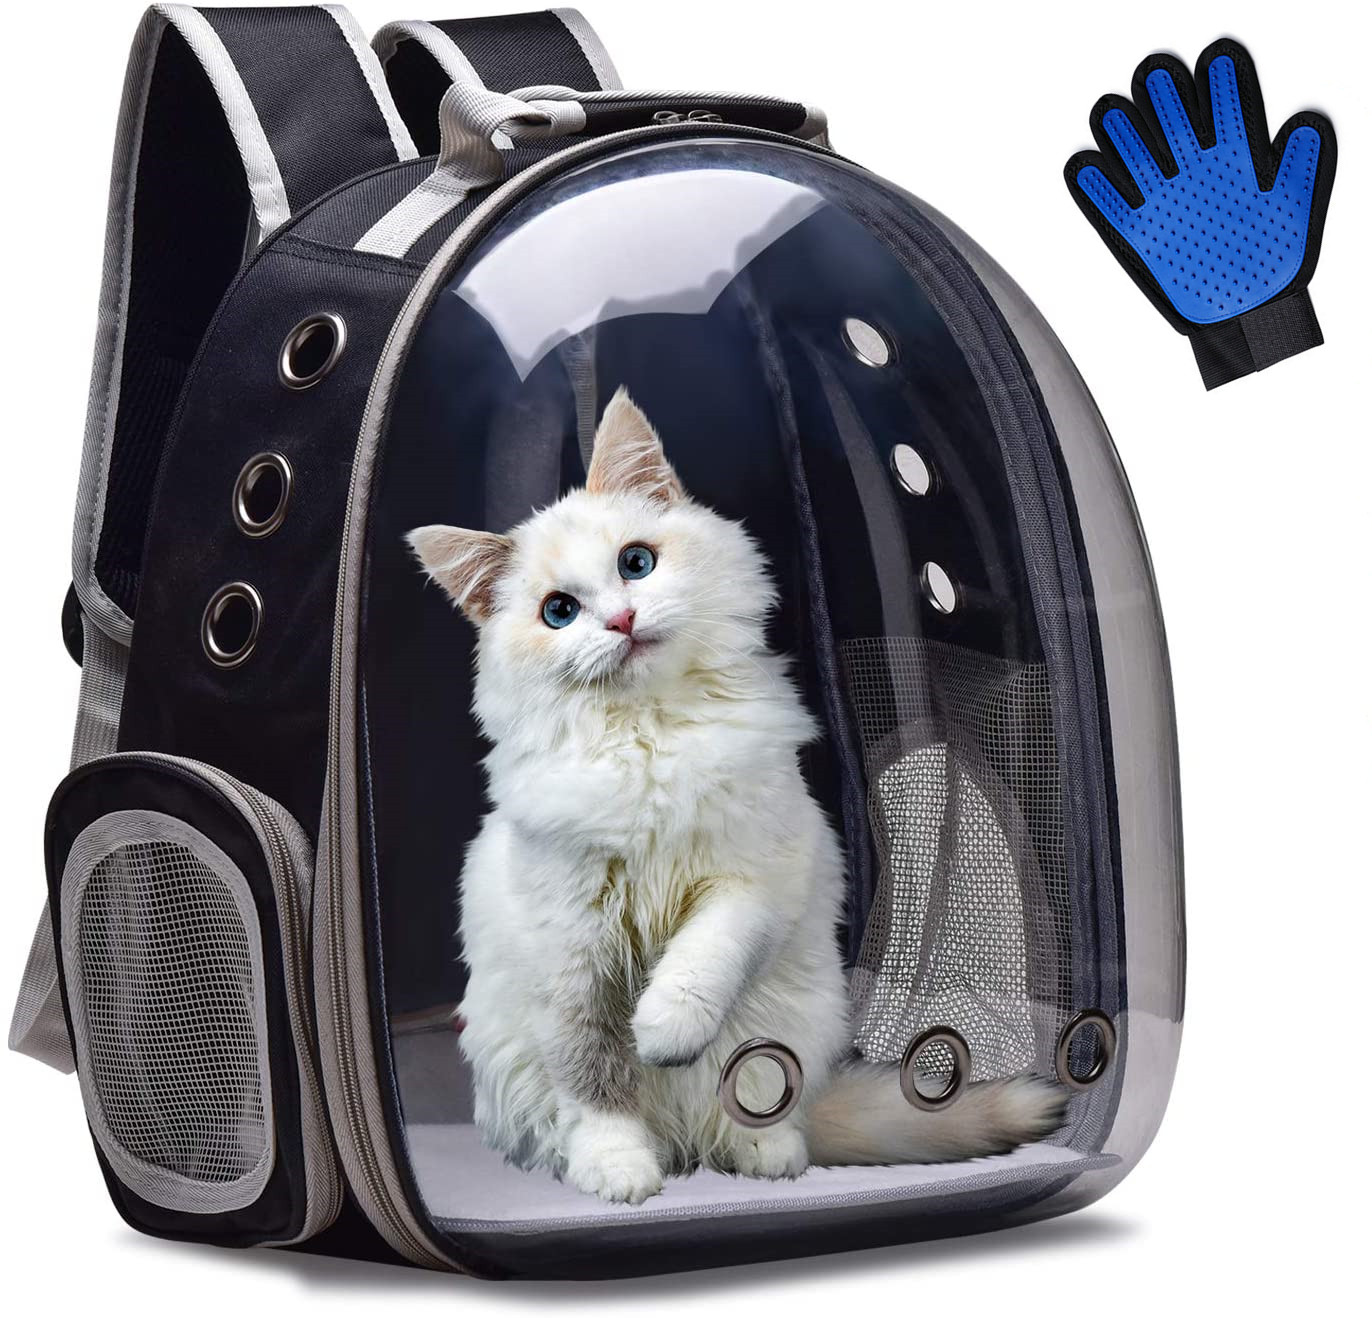 Cat Carrier Backpack Breathable Transparent Puppy Dog Bubble Bag Space Capsule Pet Transport Carrying With Free Brush Glove New 1